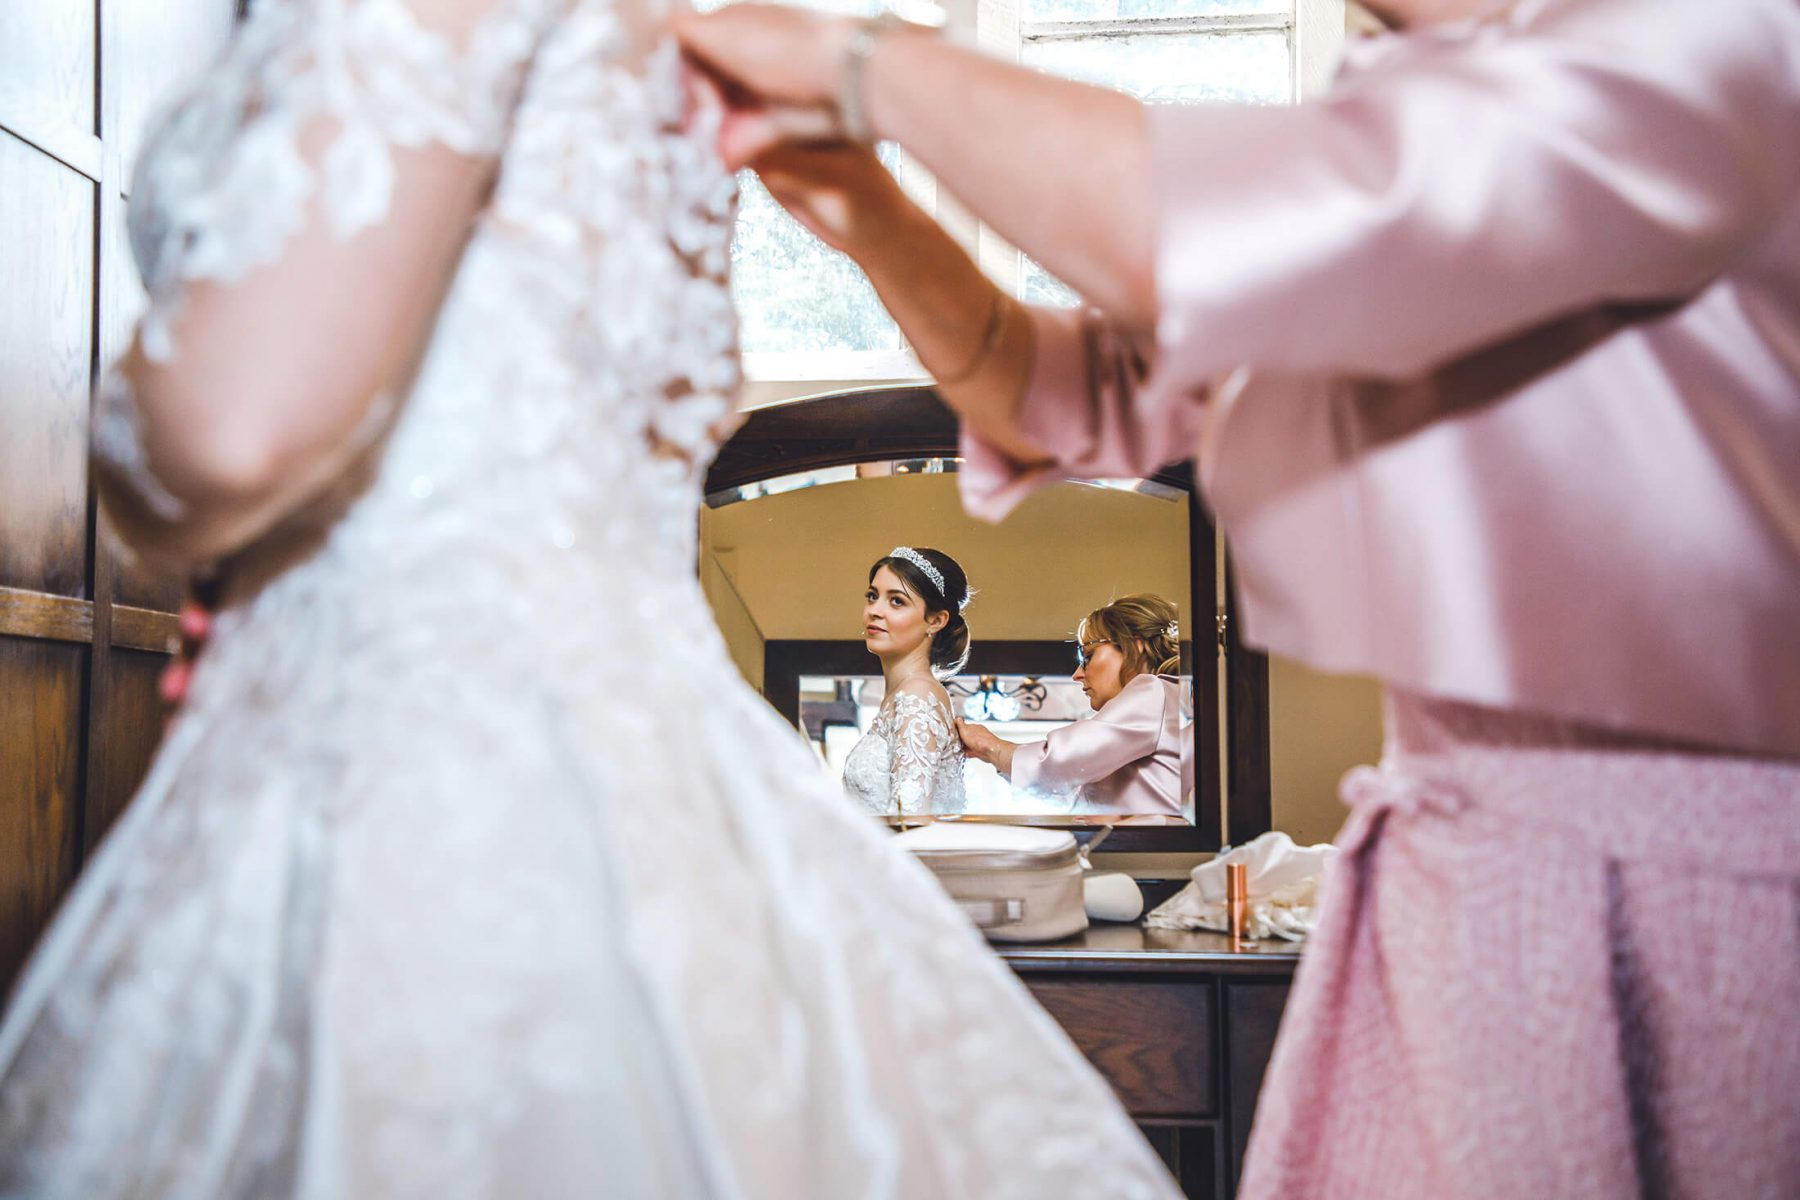 A reflection of a bride in a mirror during bridal prep